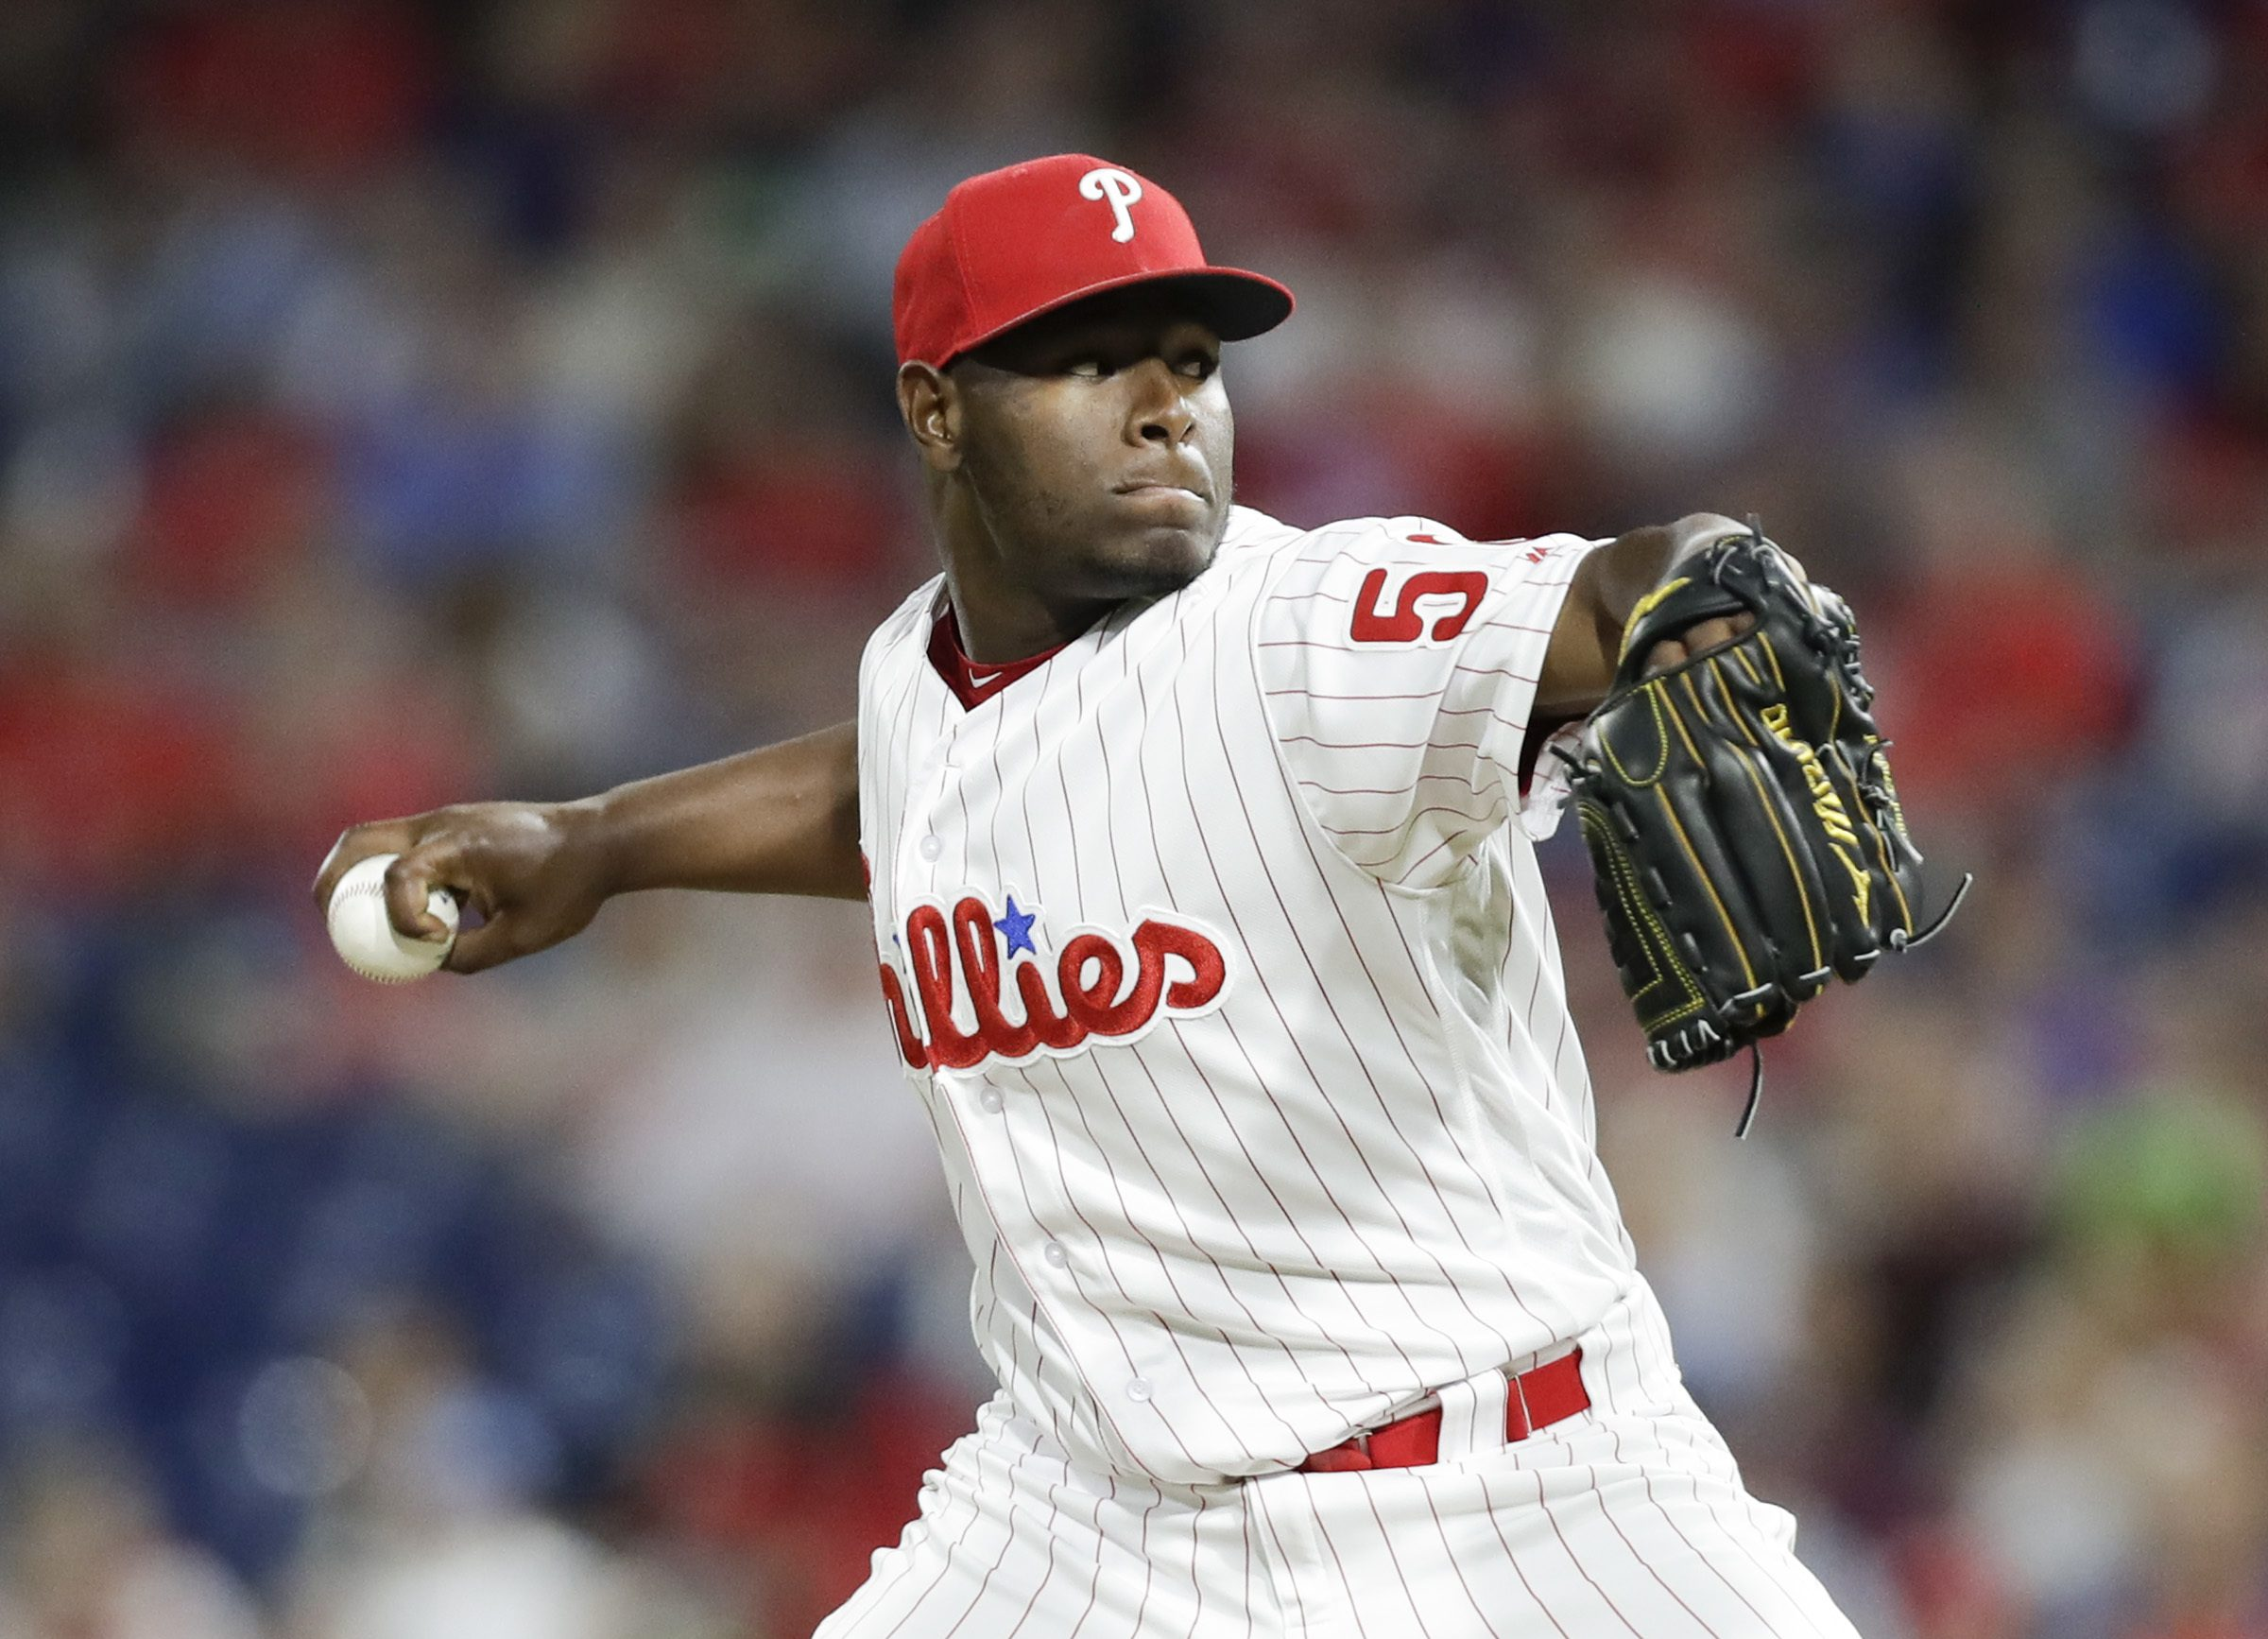 Phillies pitcher Hector Neris throws the baseball against the Atlanta Braves on Wednesday, May 23, 2018 in Philadelphia.